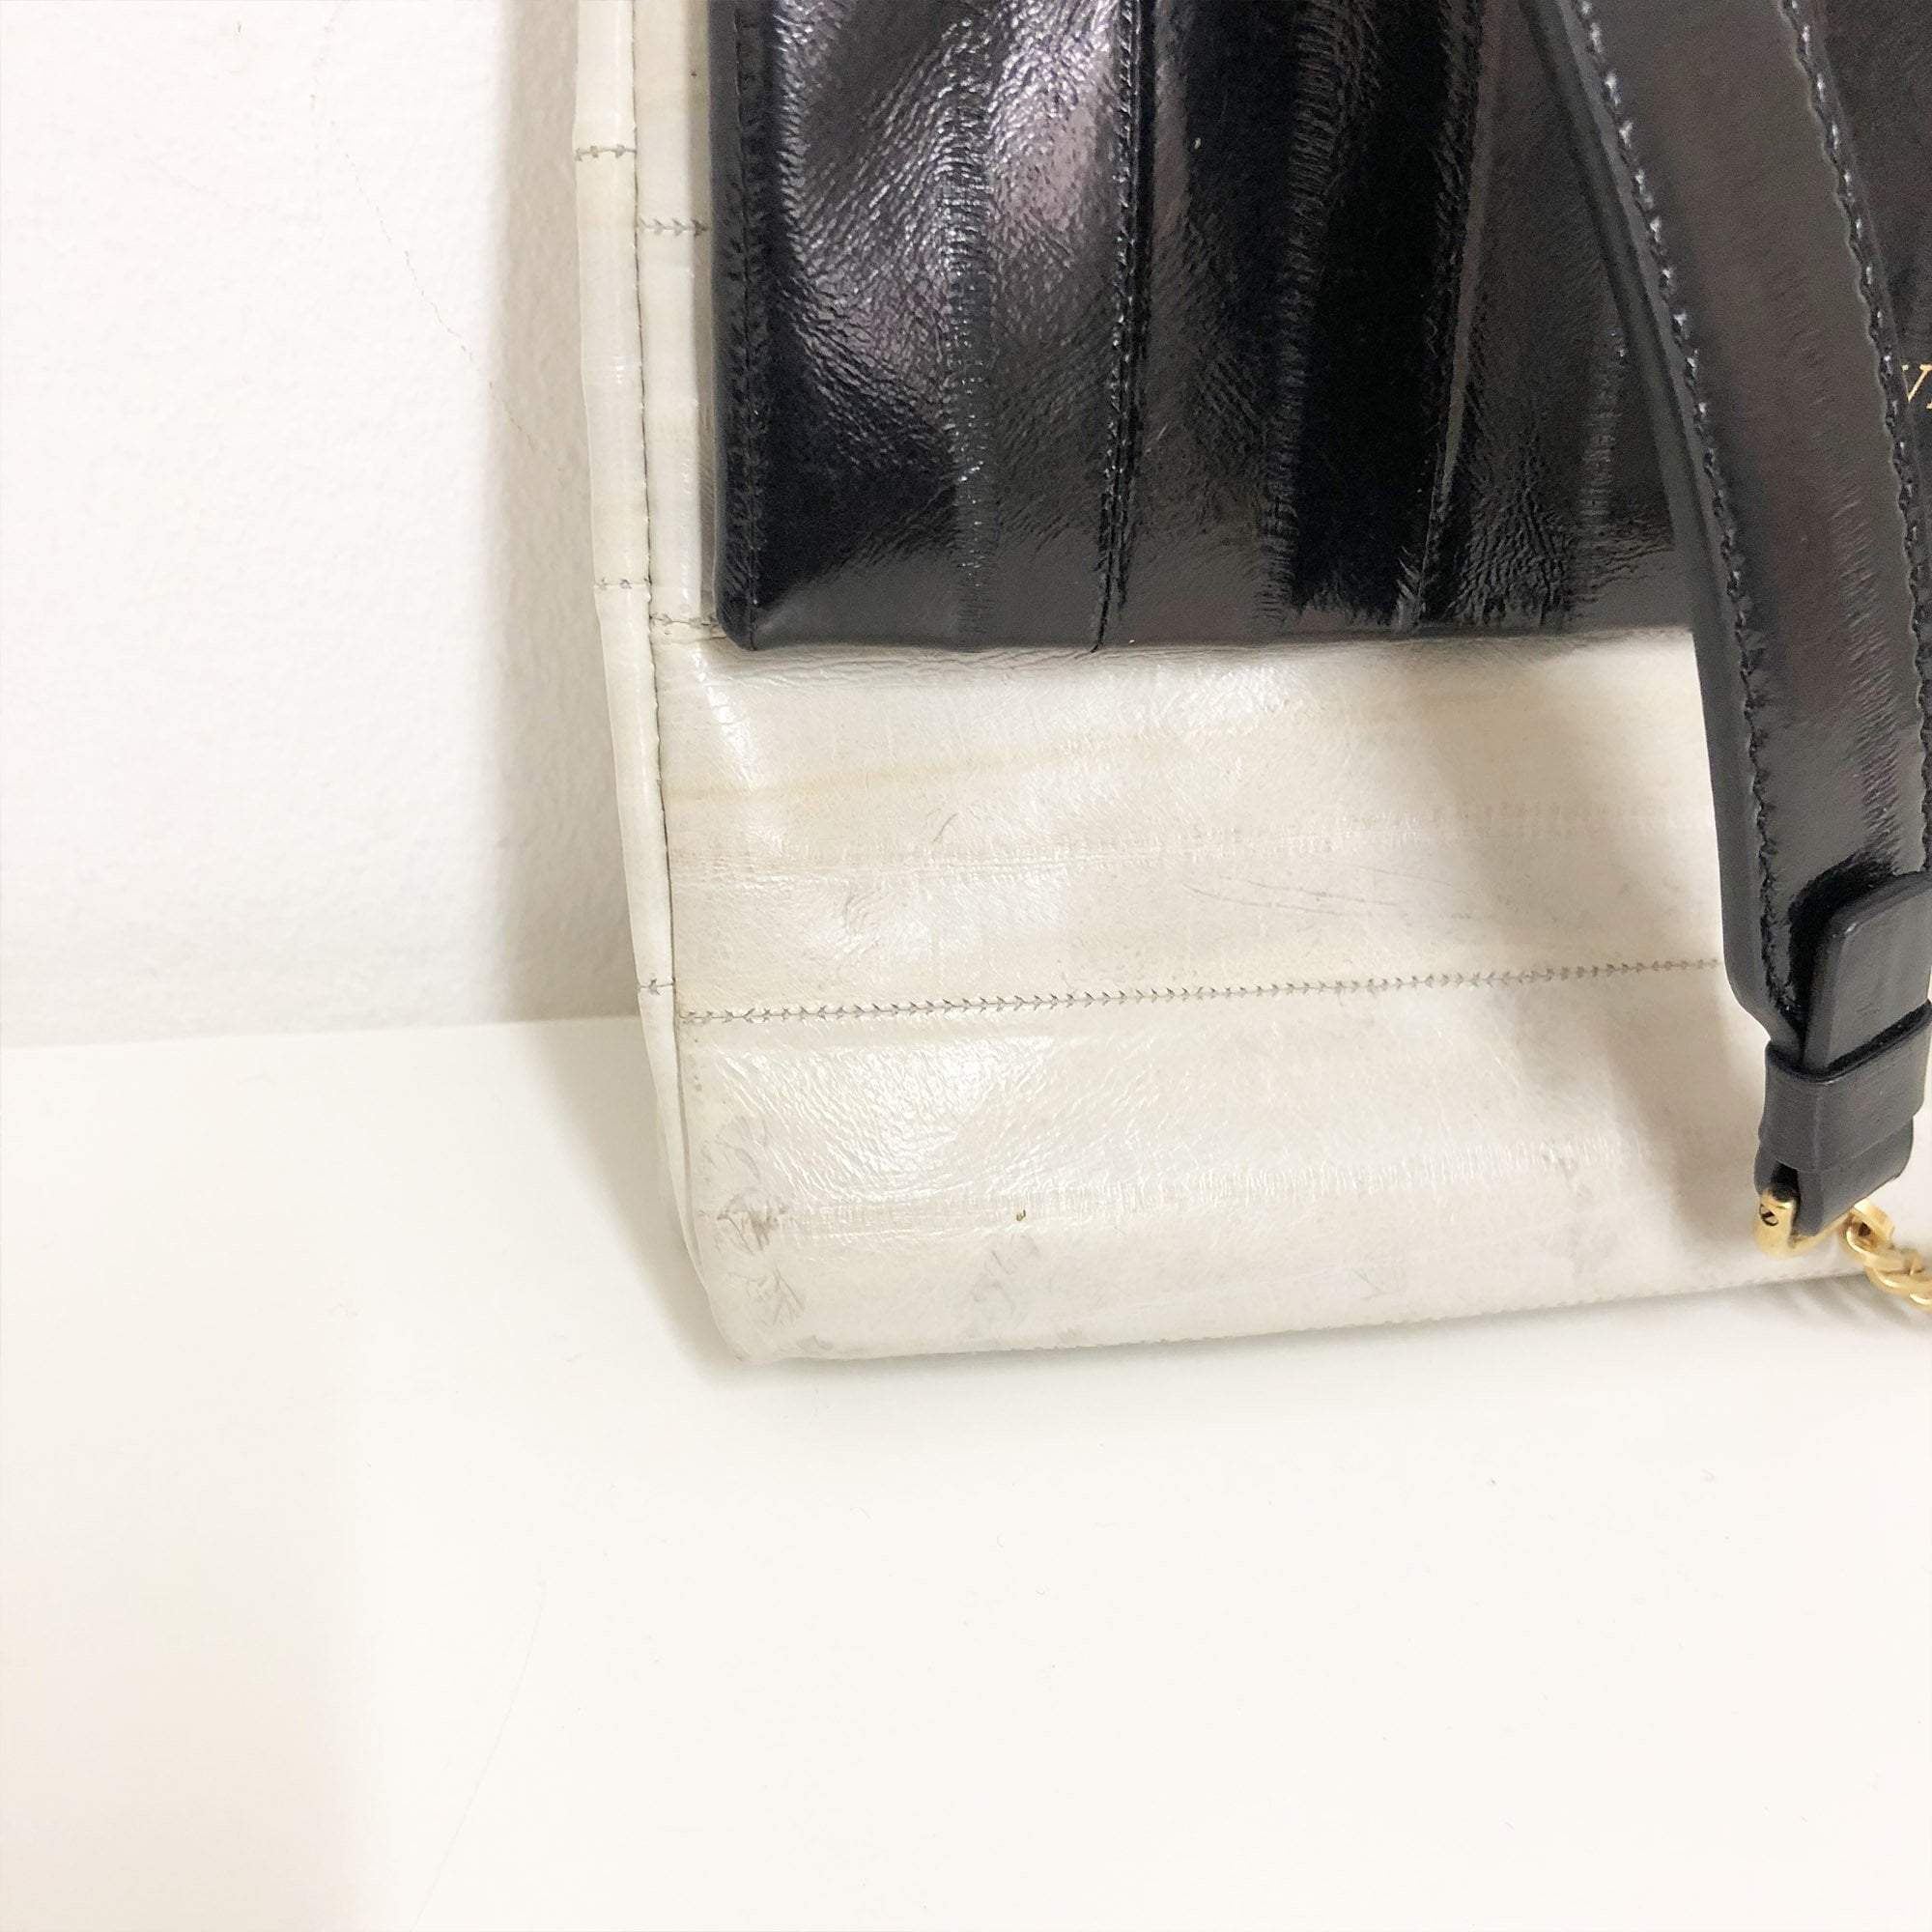 Lanvin  Black and Grey Patent Leather Cross Body Flap Bag